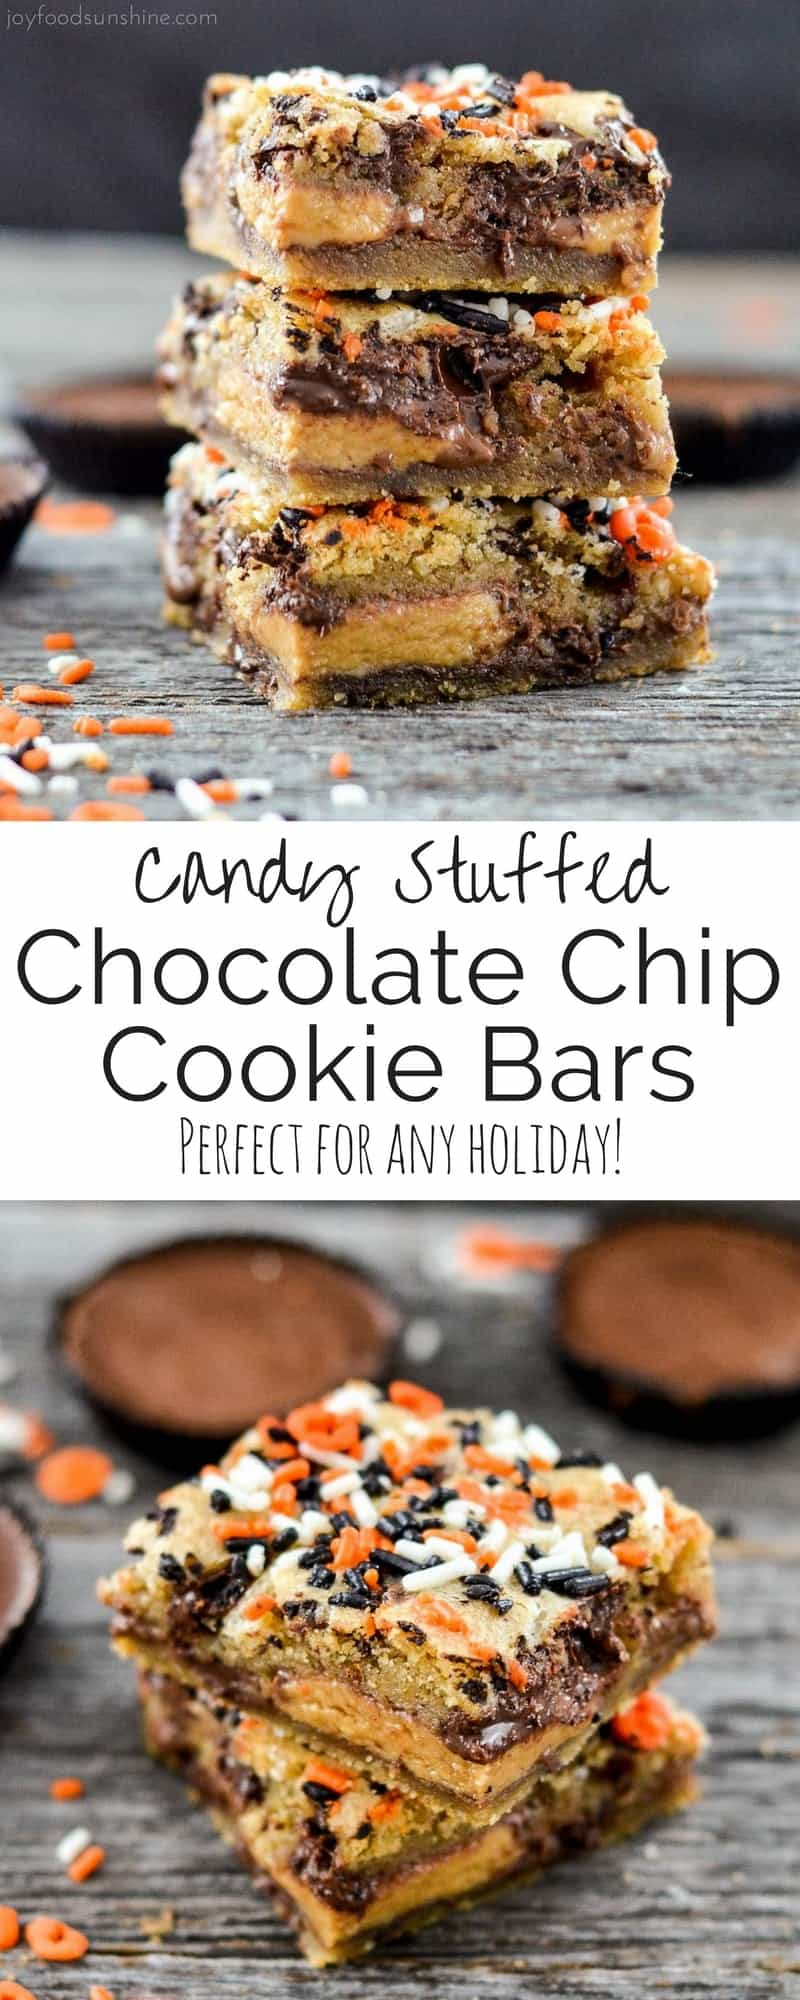 Candy Stuffed Chocolate Chip Cookie Bars! Two layers of gooey chocolate chip cookie dough stuffed with the candy of your choice! The perfect dessert recipe to use up that Halloween Candy or adapt them for any holiday!